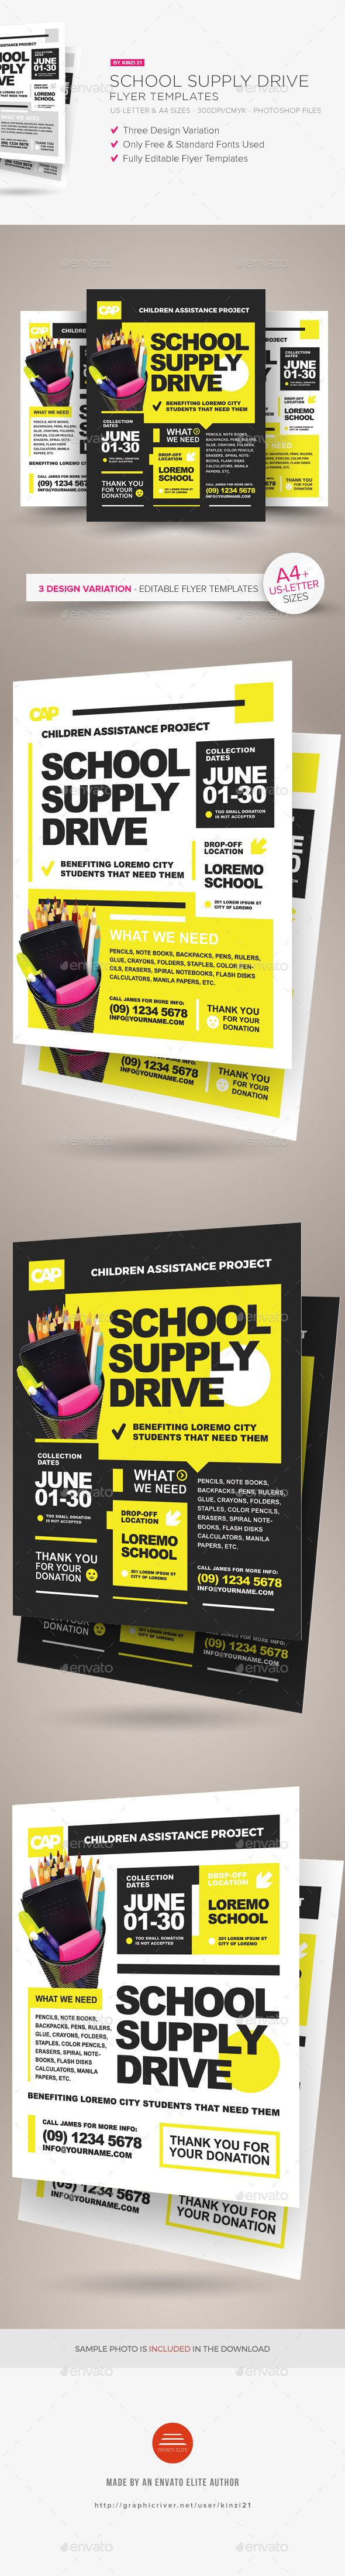 School Supply Drive Flyer Templates - Miscellaneous Events